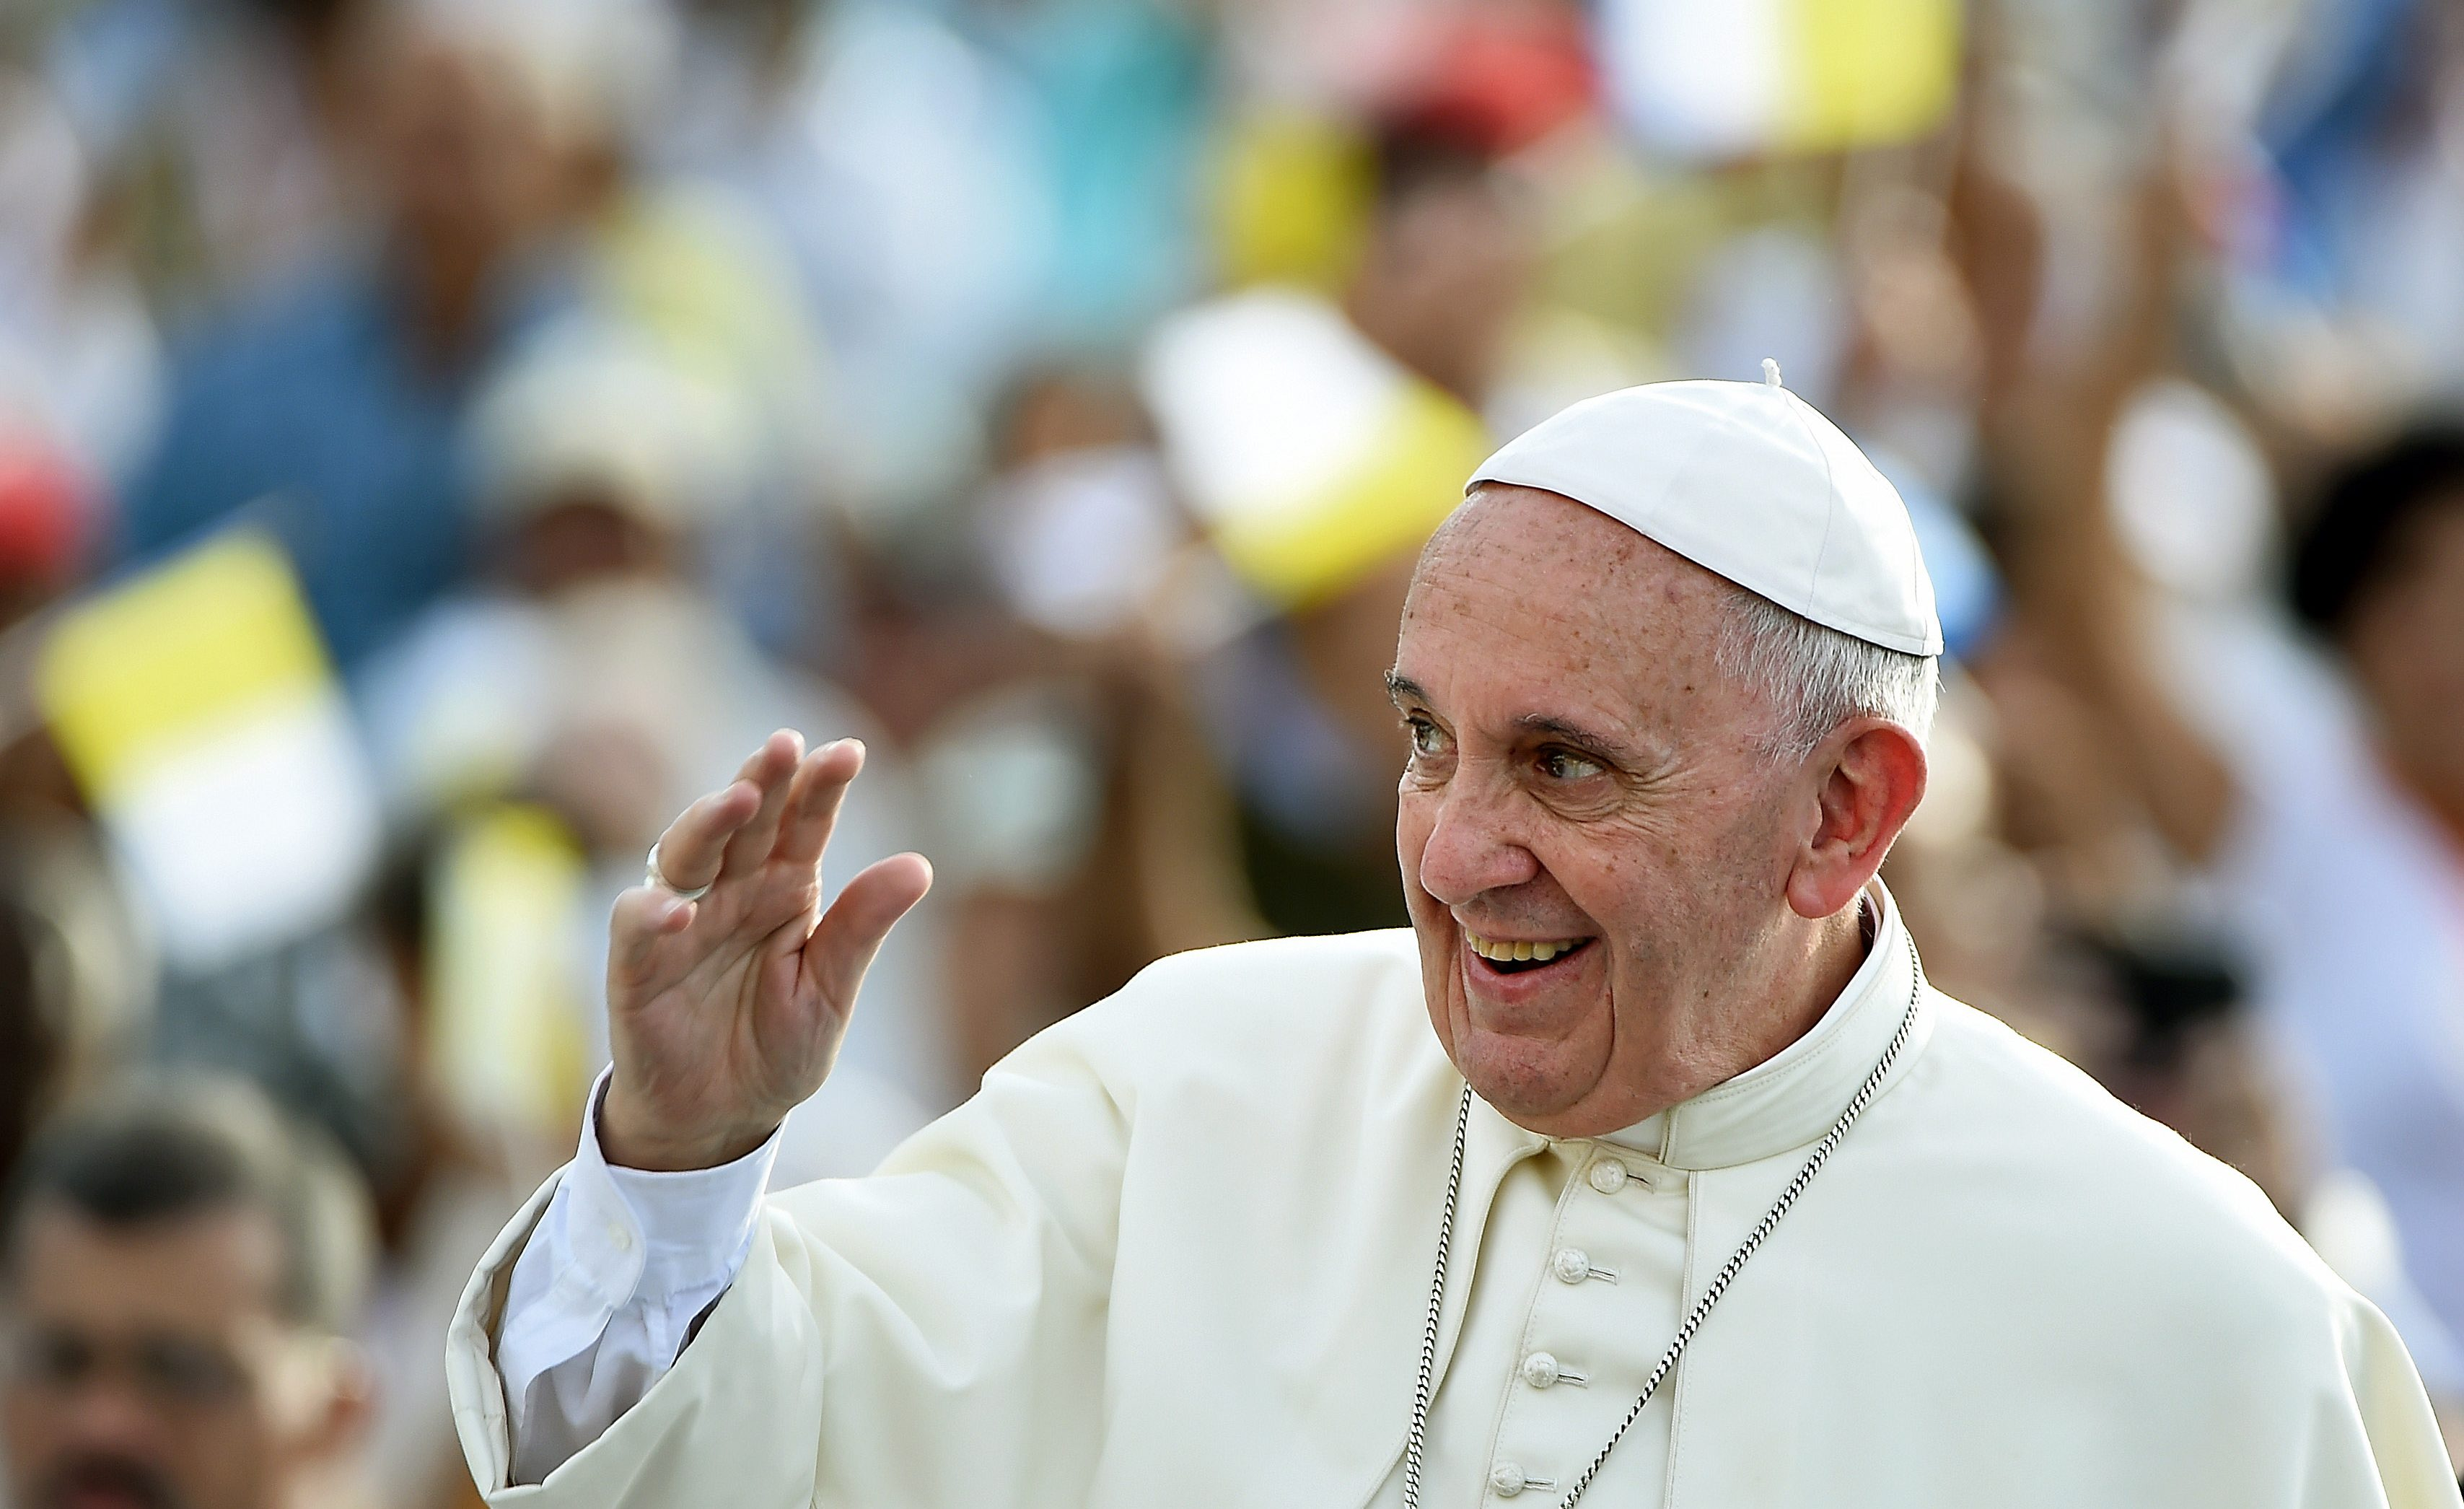 Pope Francis arrives at Revolution Square in Havana to give mass on September 20, 2015. Pope Francis greeted massive crowds of fans and Catholic faithful Sunday as he arrived in his popemobile to give mass on Havana's iconic Revolution Square, the highlight of his trip to Cuba. The pontiff's eight-day tour will also take him to the United States.   AFP PHOTO / FILIPPO MONTEFORTE